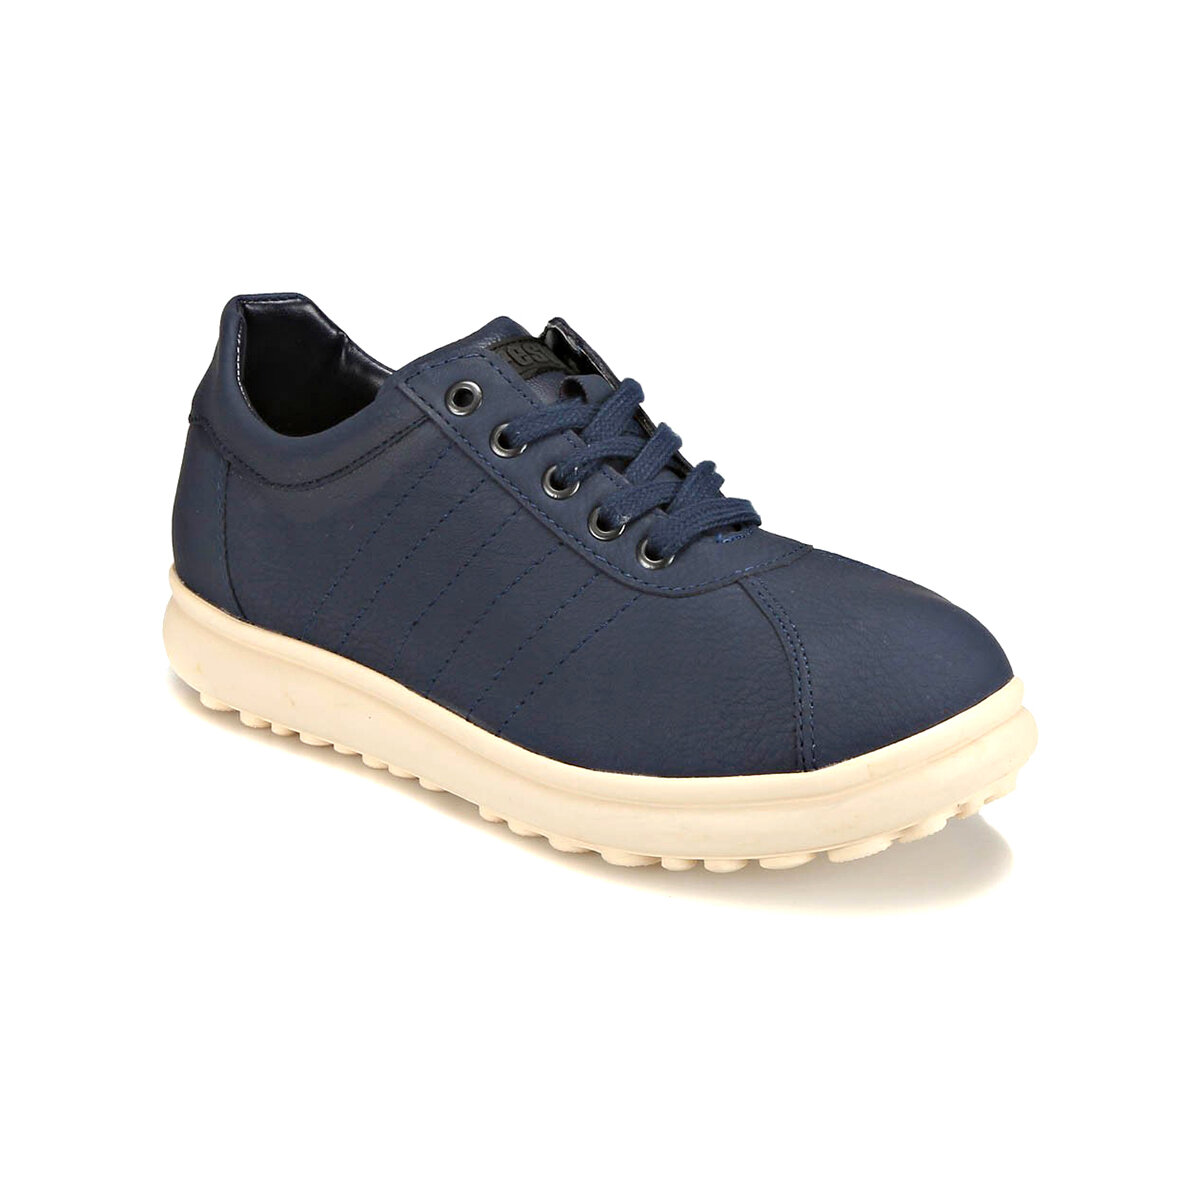 FLO 745 M 1612 Navy Blue Men 'S Shoes Forester